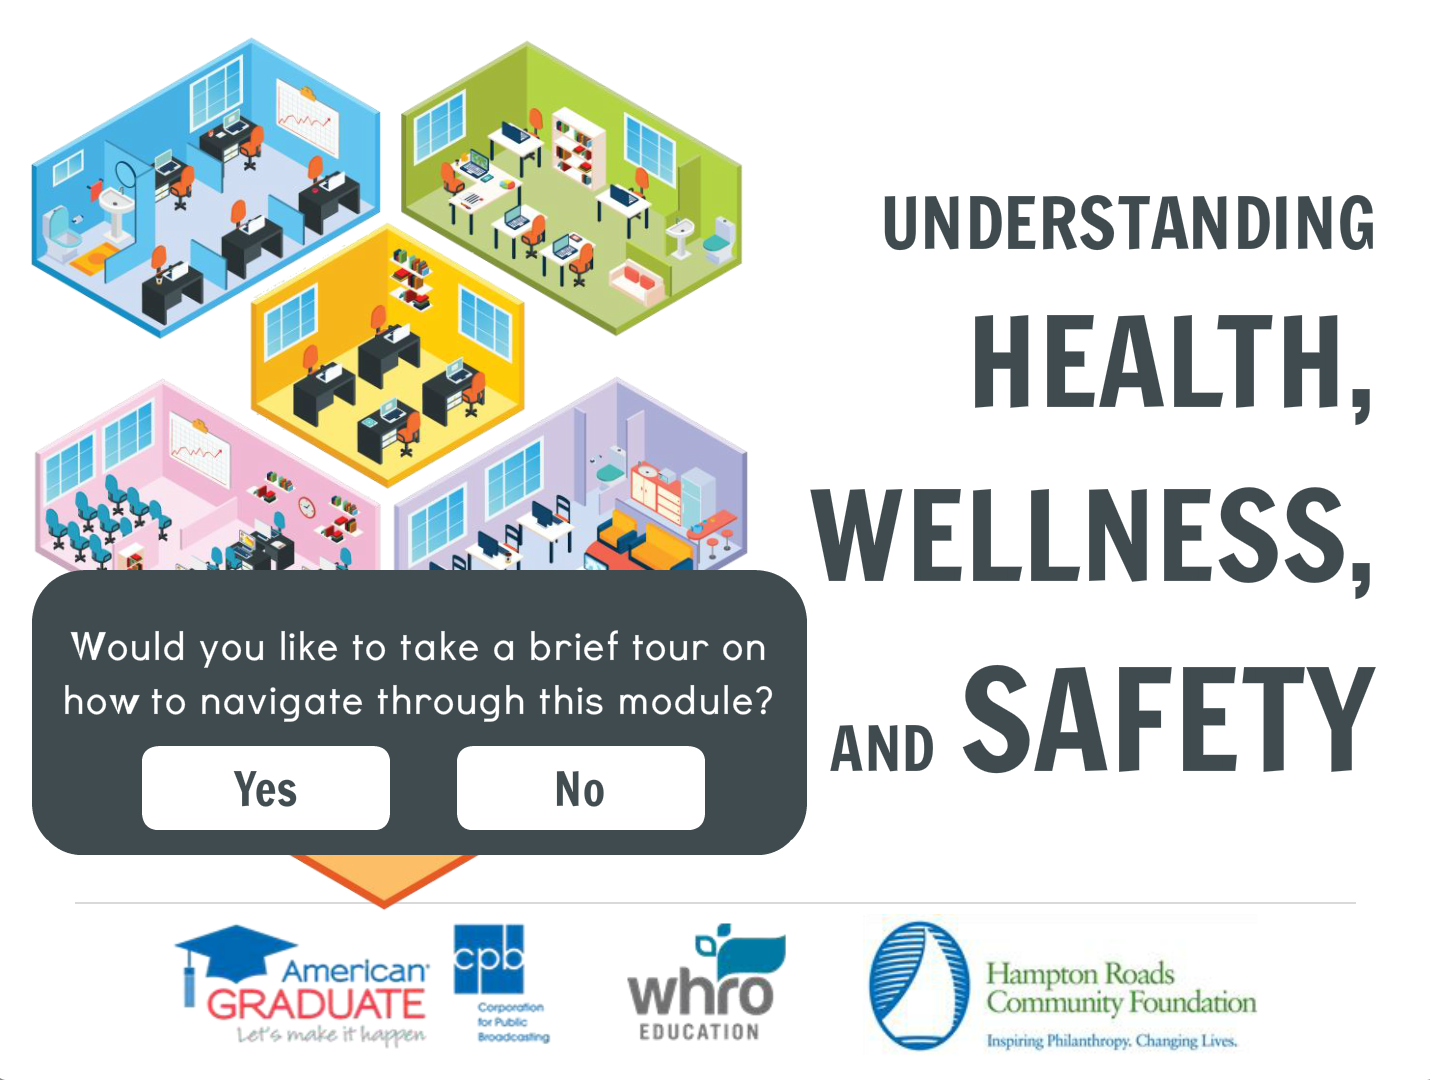 Understanding Health, Wellness, and Safety